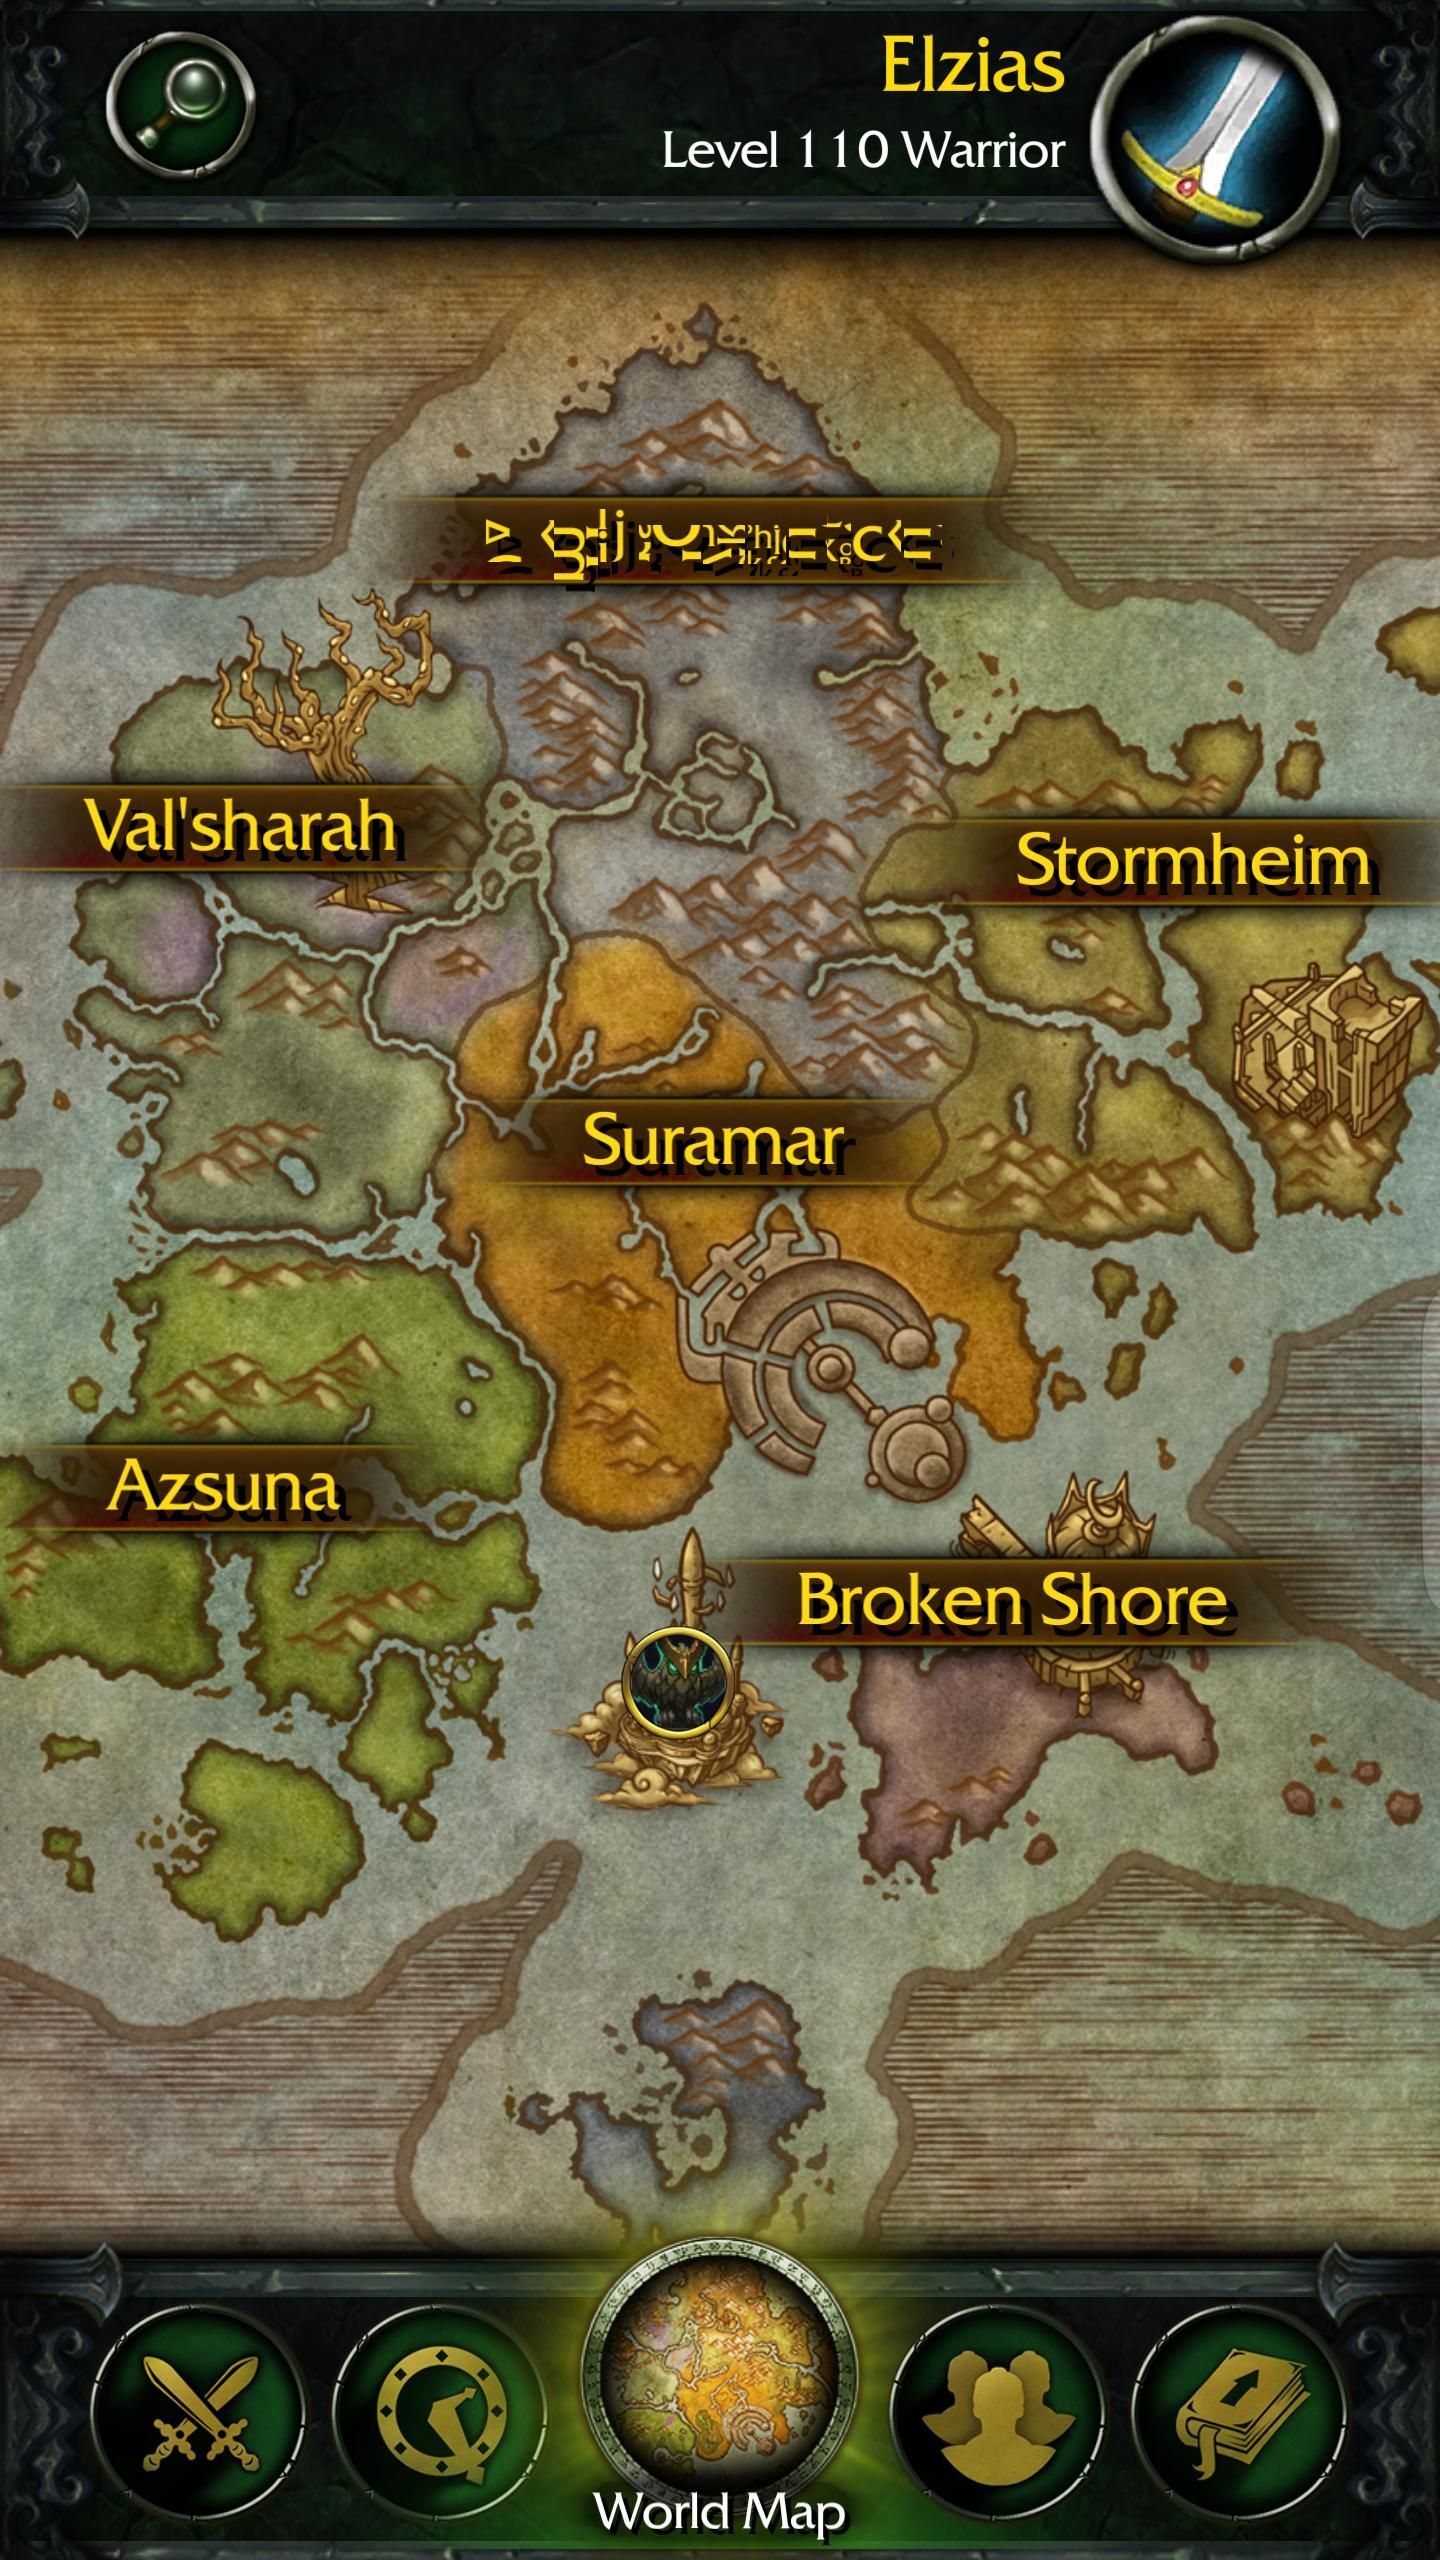 Discovered a new zone worldofwarcraft blizzard hearthstone wow worldofwarcraft blizzard hearthstone wow warcraft blizzardcs gaming gumiabroncs Images